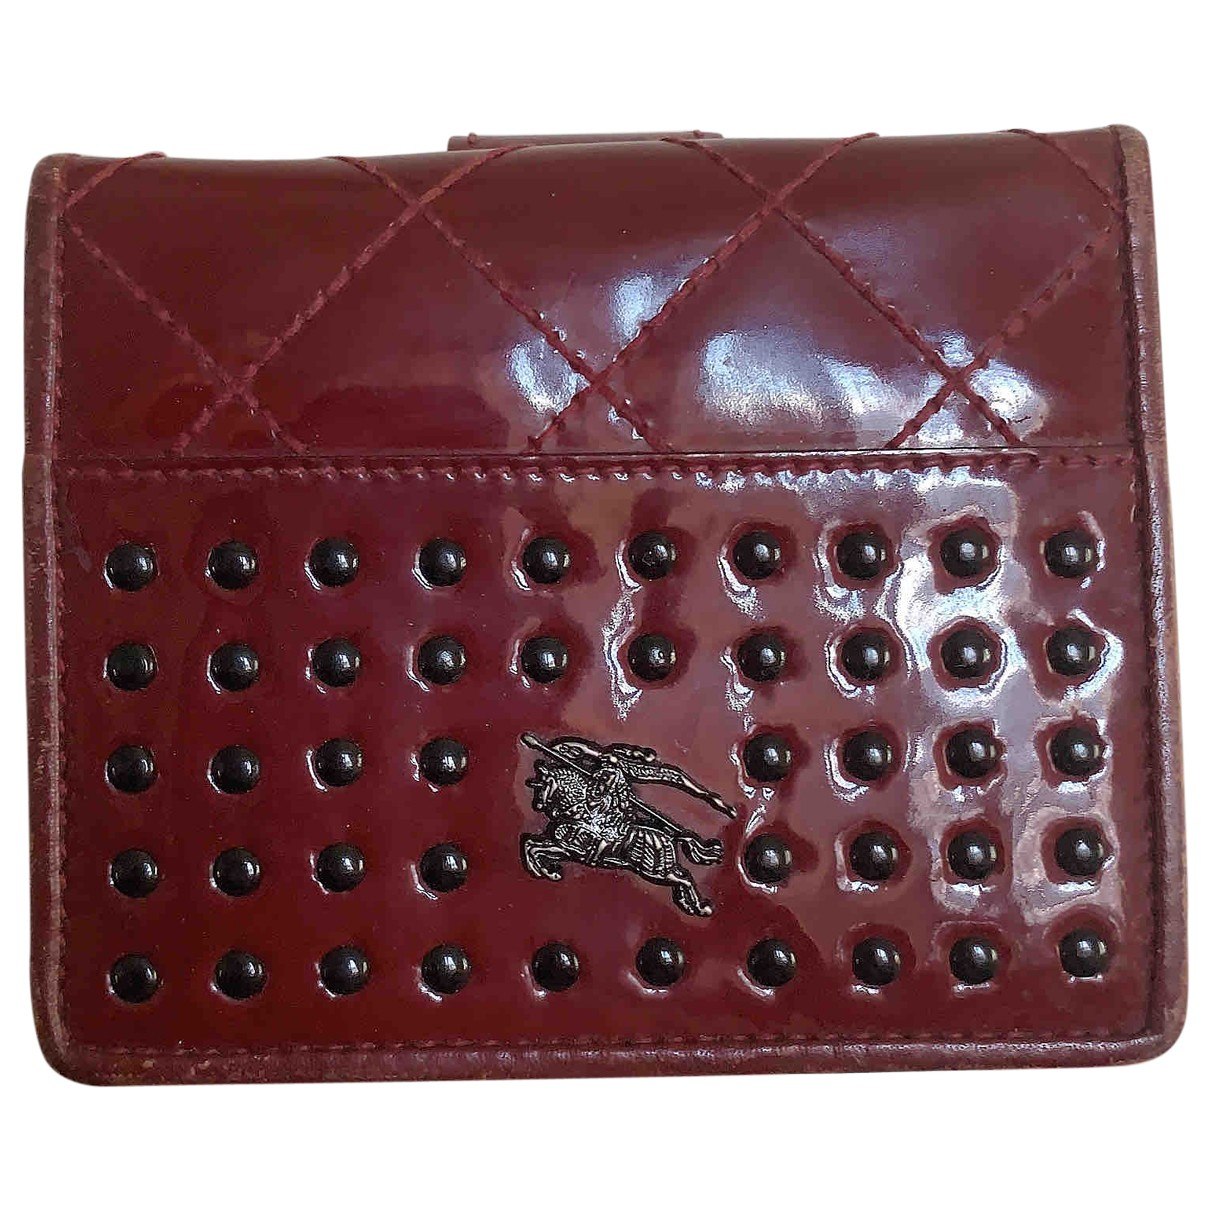 Burberry \N Burgundy Patent leather wallet for Women \N